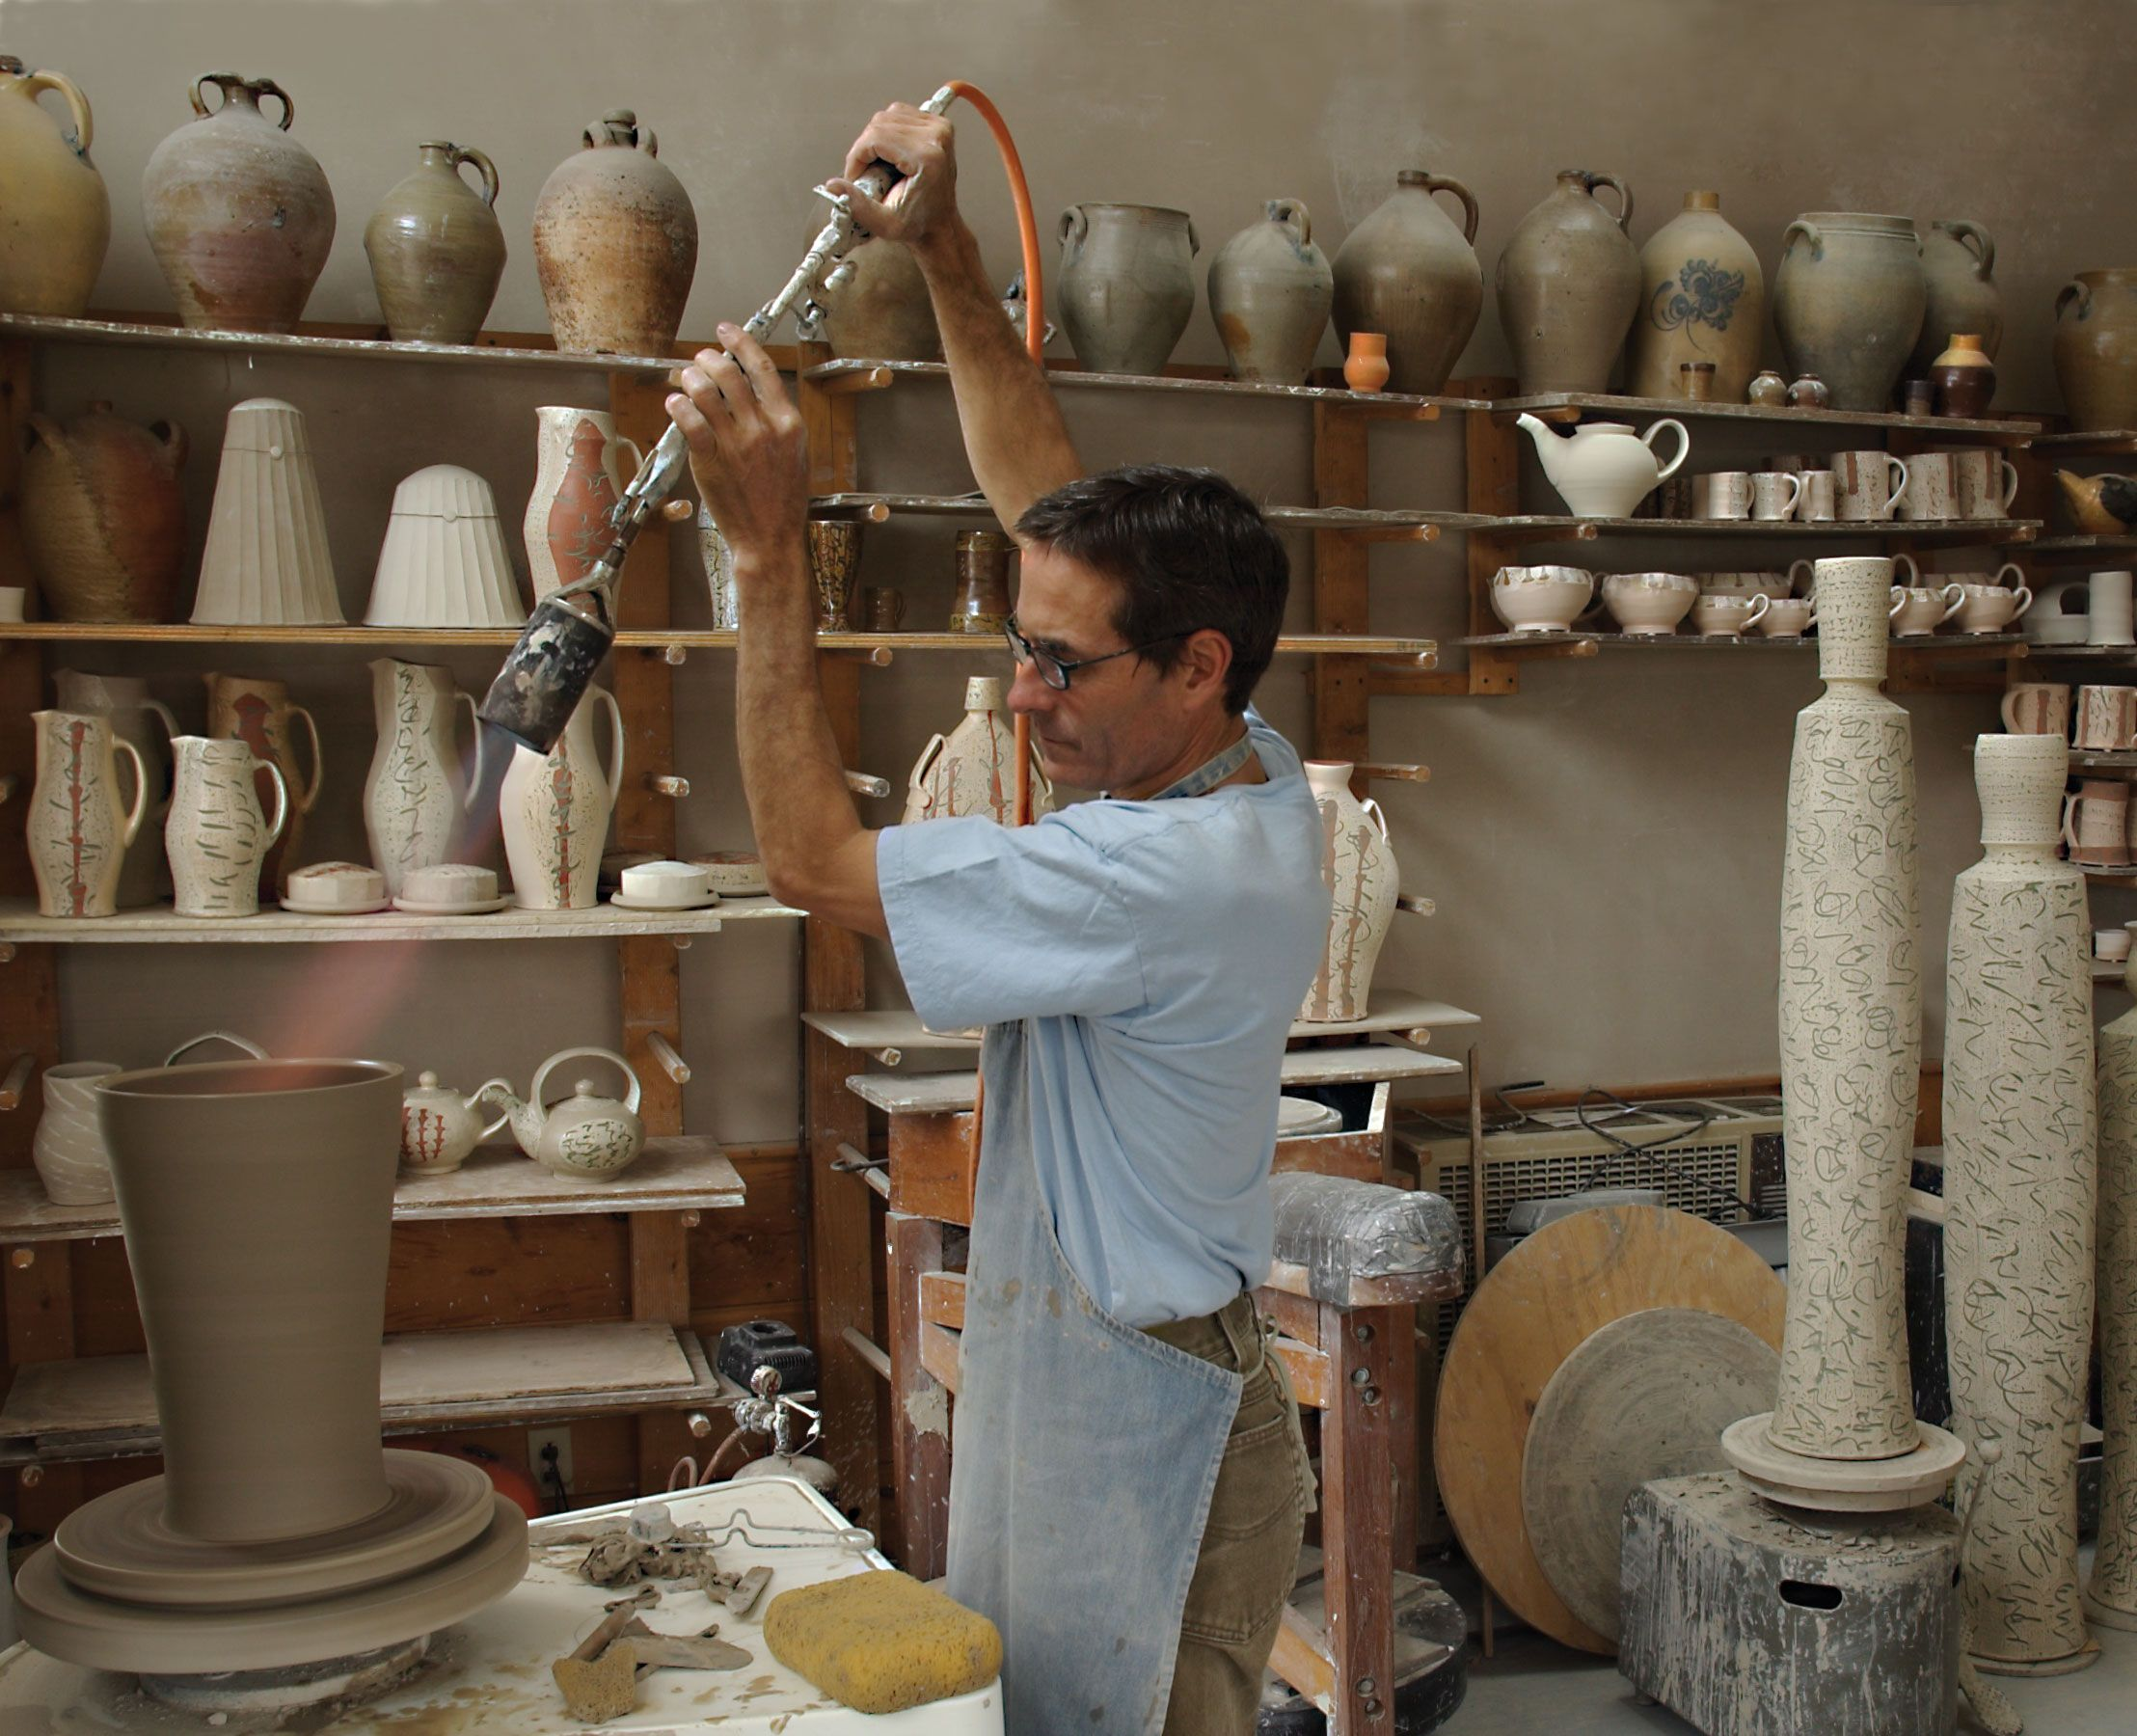 Pin by Bill Moser on Pottery-Potters/Ceramic Artist III